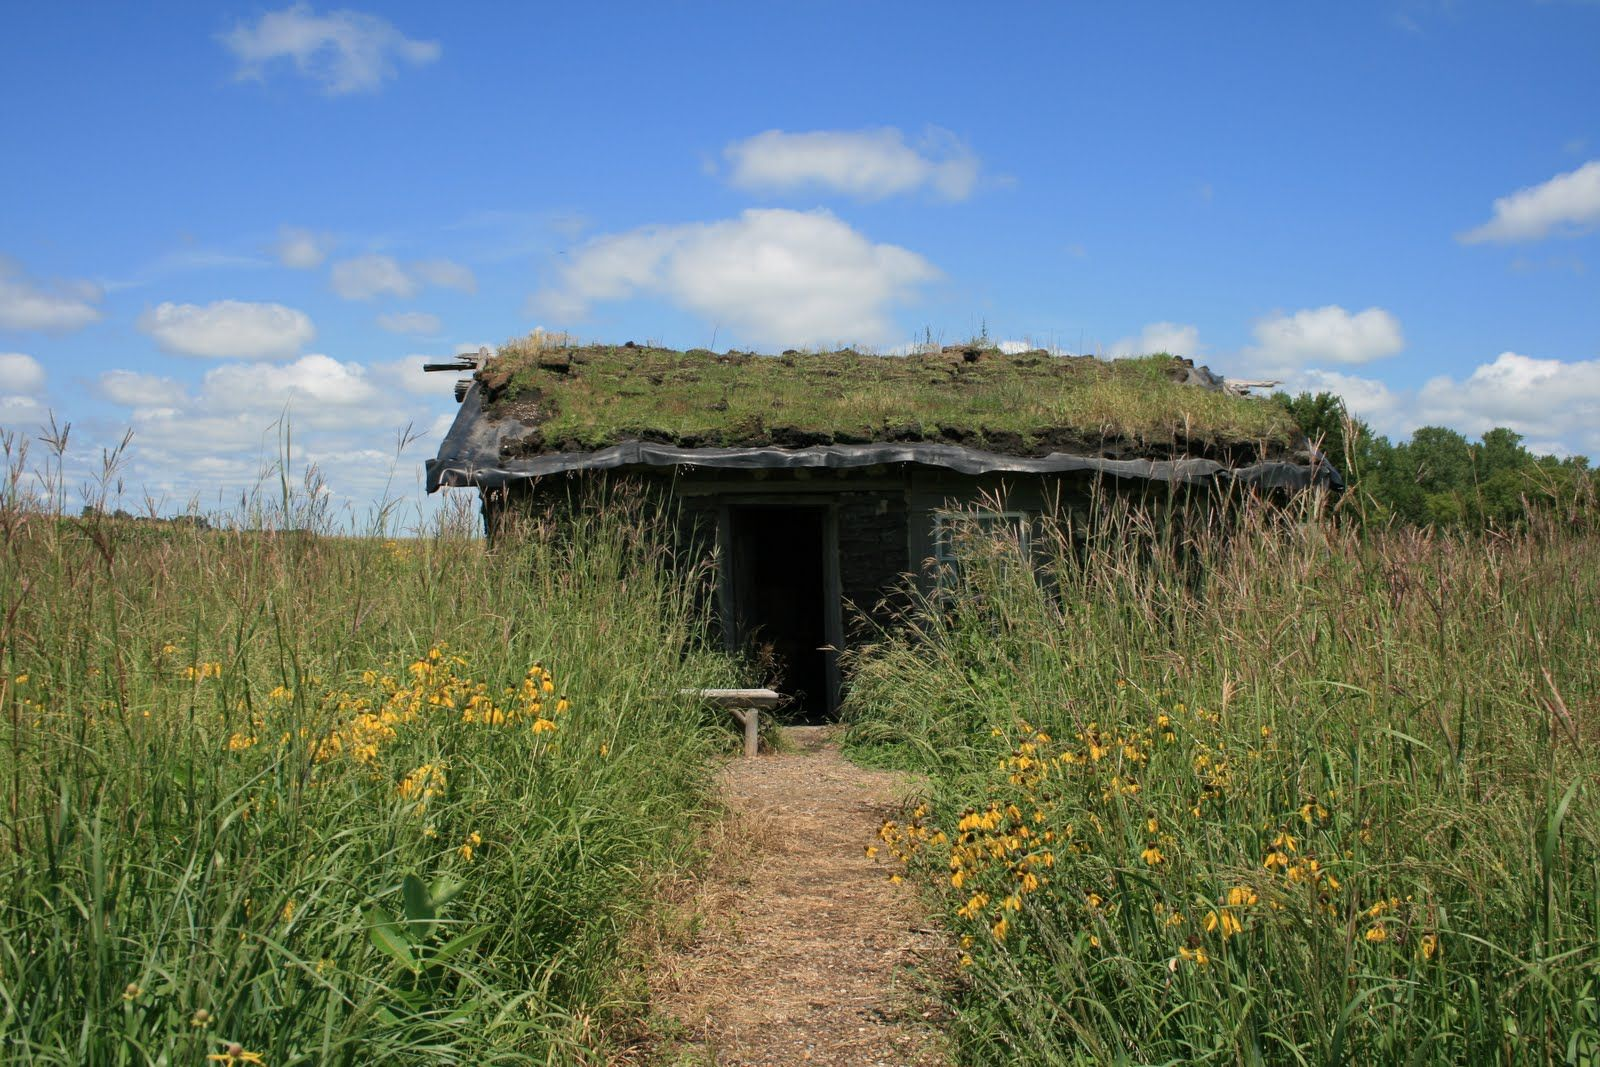 Sod House Near Plum Creek The Site Of The Ingalls Family Dugout